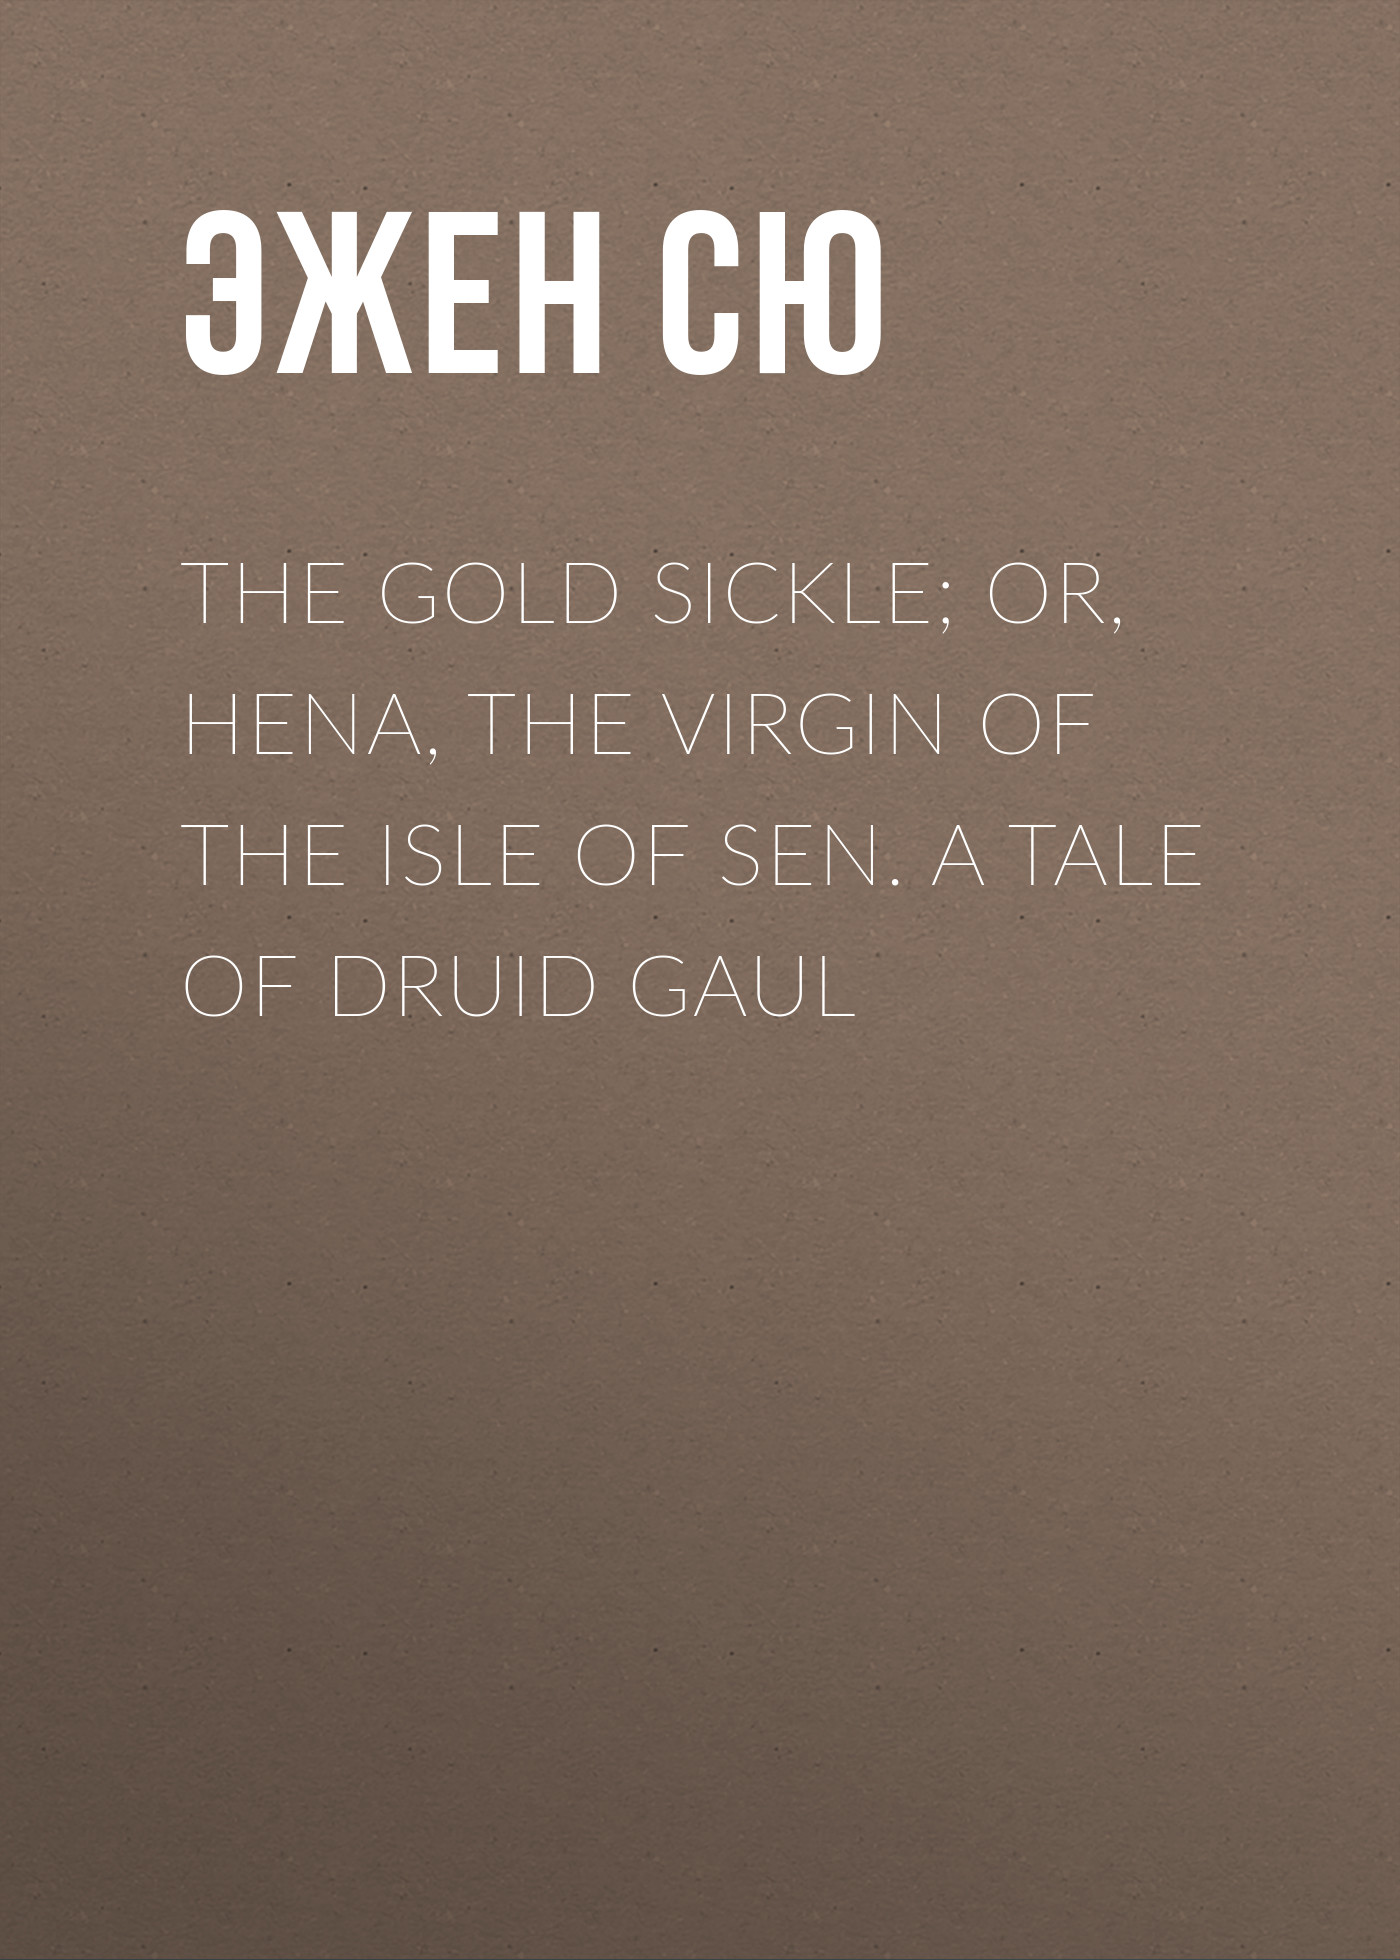 Эжен Сю The Gold Sickle; Or, Hena, The Virgin of The Isle of Sen. A Tale of Druid Gaul эжен сю the gold sickle or hena the virgin of the isle of sen a tale of druid gaul